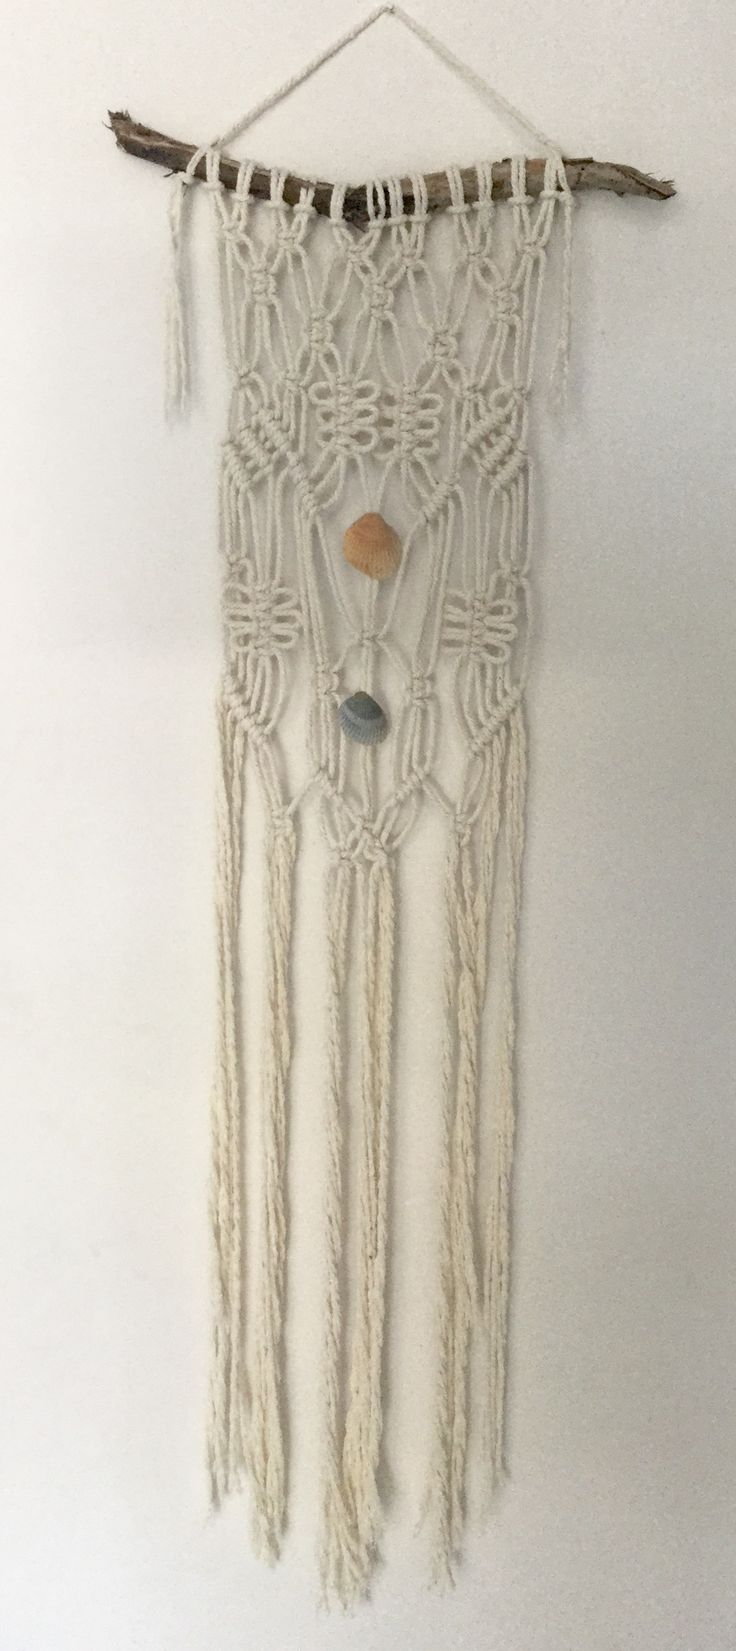 Macrame natural cotton and driftwood wall hanging